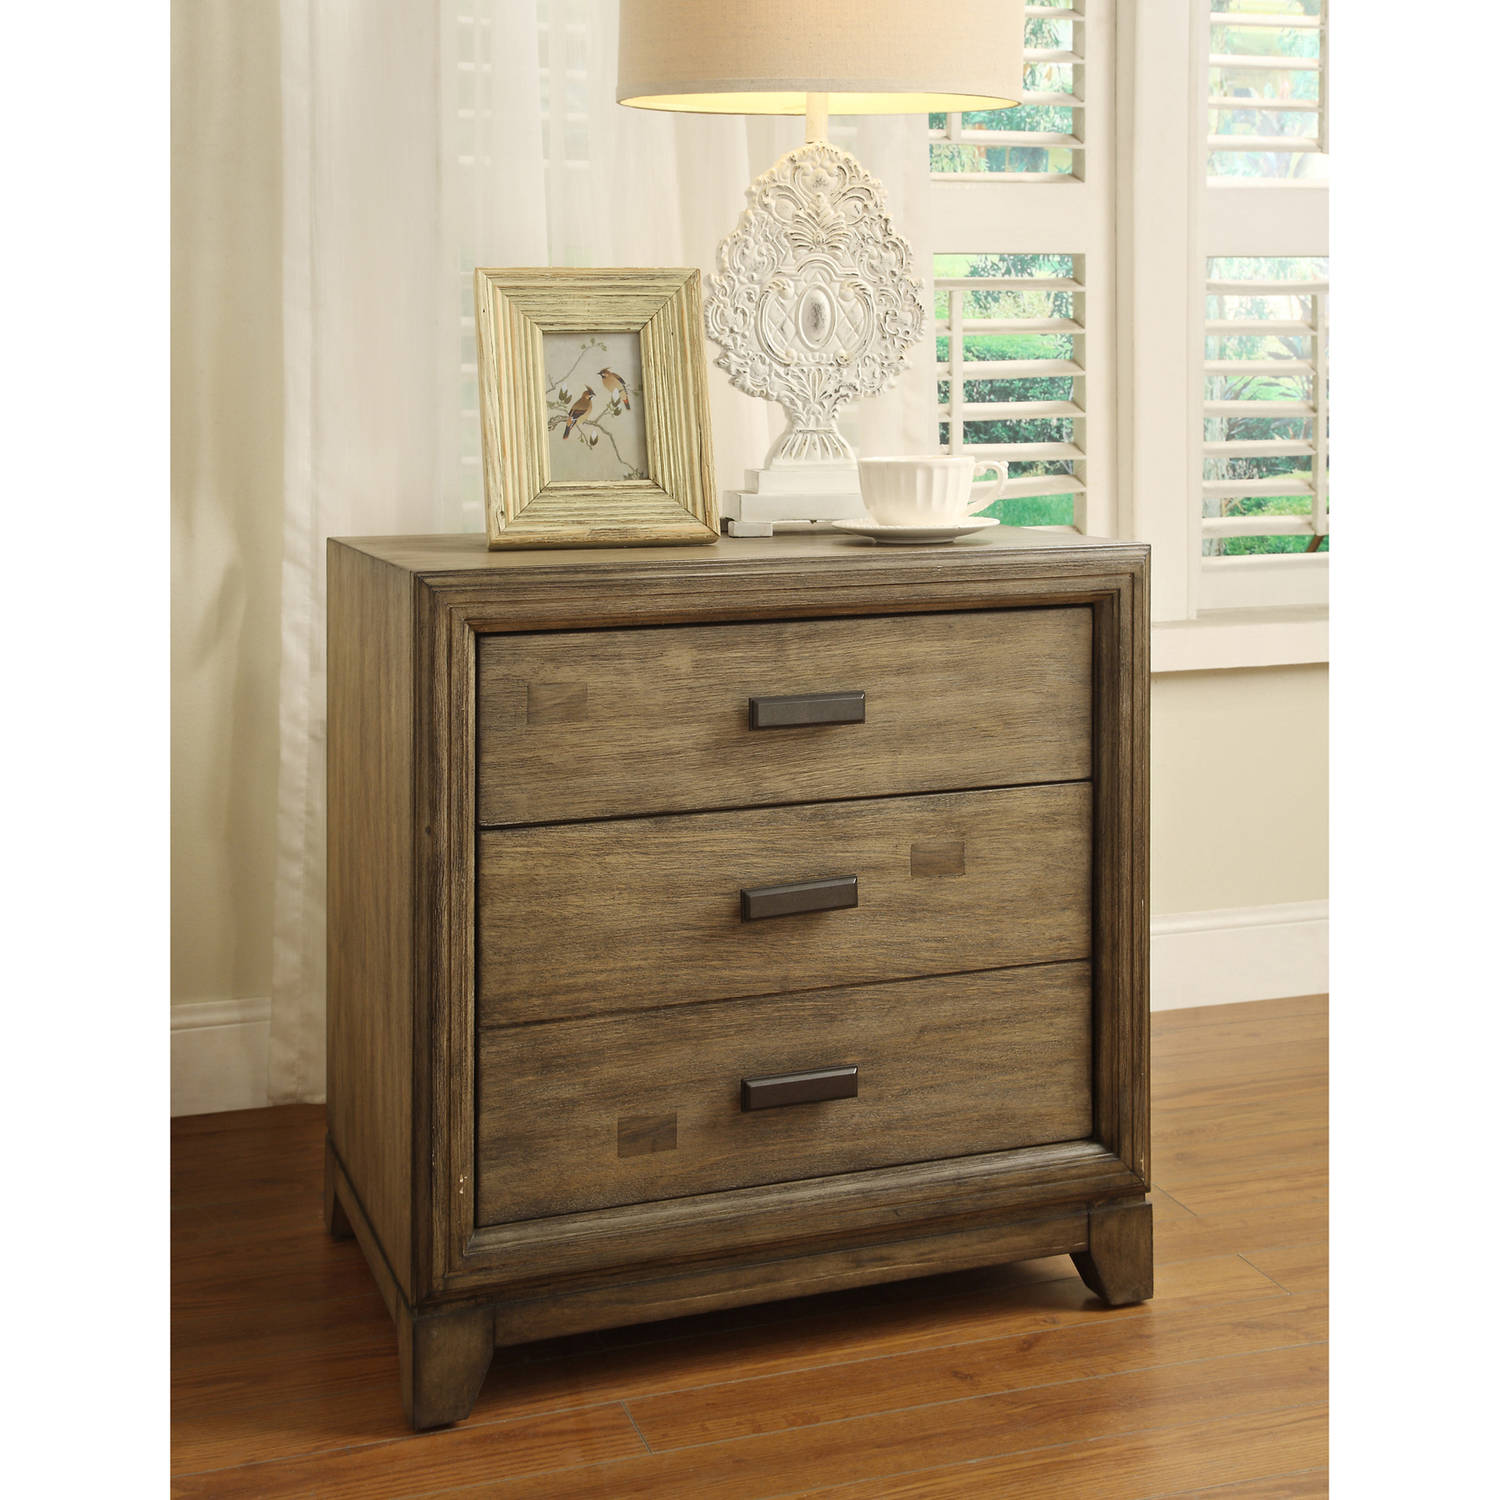 Furniture of America Vinnie Transitional Wood Detailed 2-Drawer Nightstand, Natural Ash